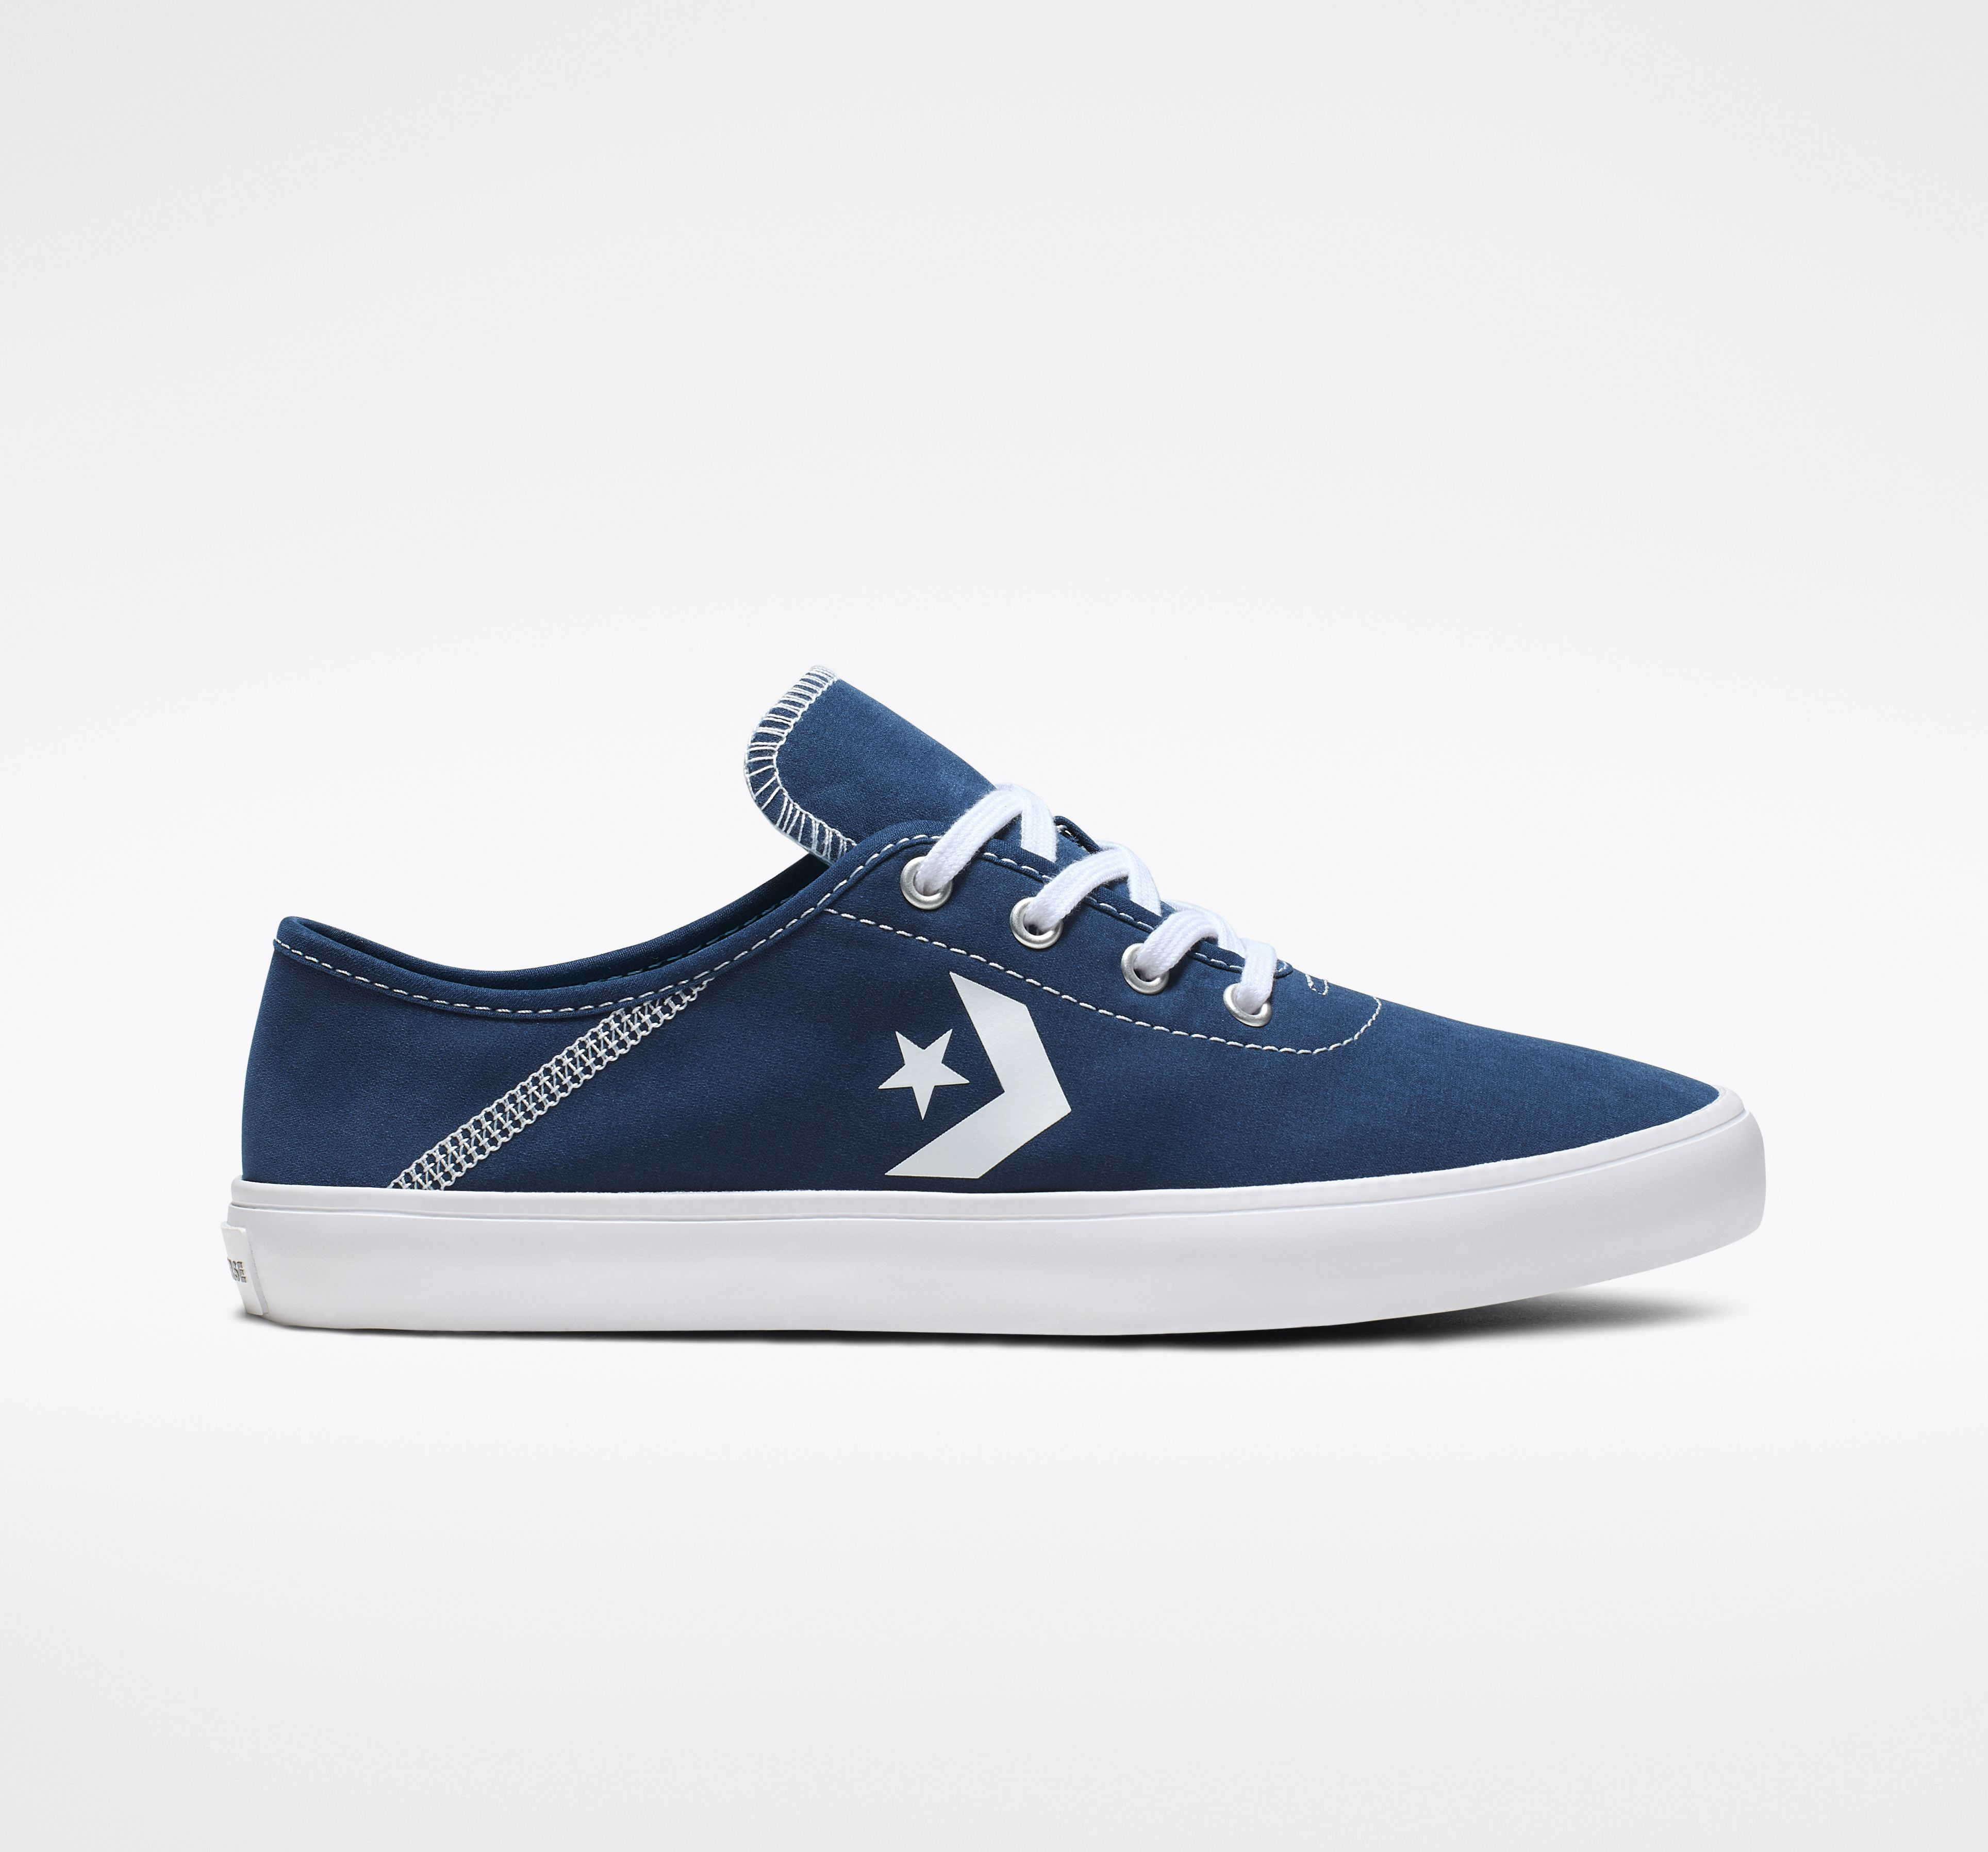 76d5606b49 Nova Costa Low Top in 2019 | Products | Converse, Shoes, Converse shoes